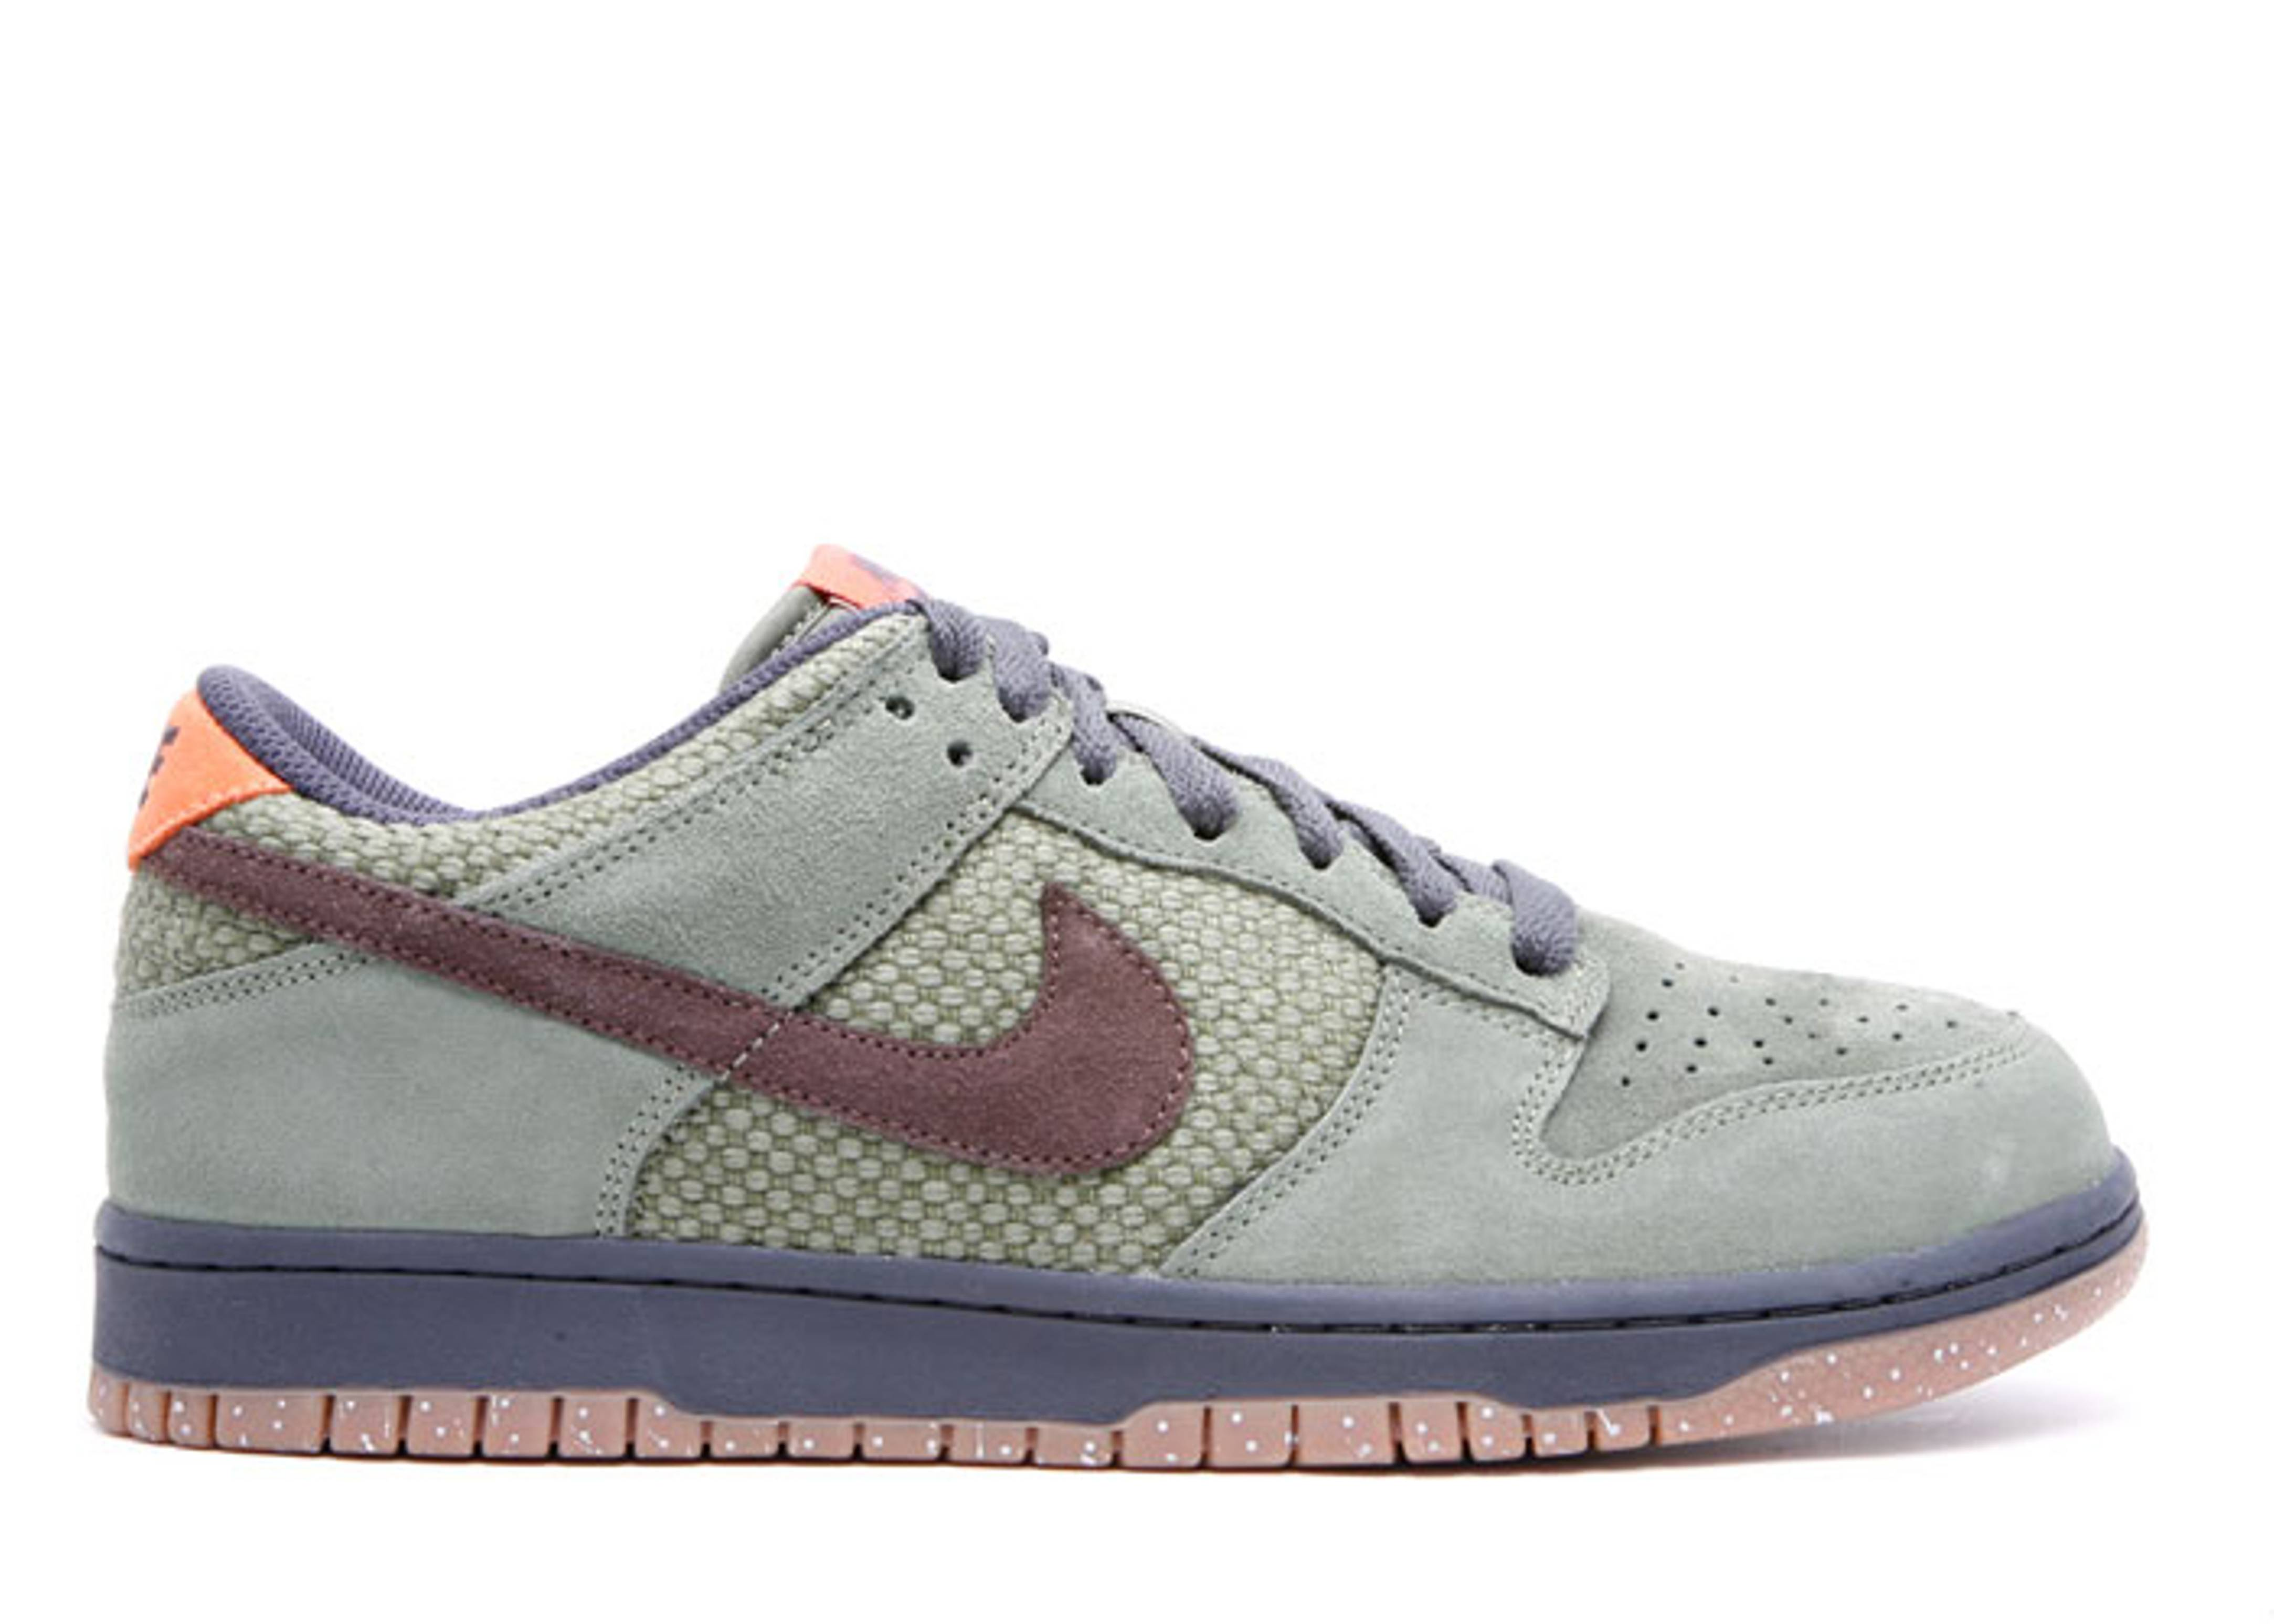 93cd2ef16617 Dunk Low Cl - Nike - 318020 321 - urban haze baroque brown-anthracite